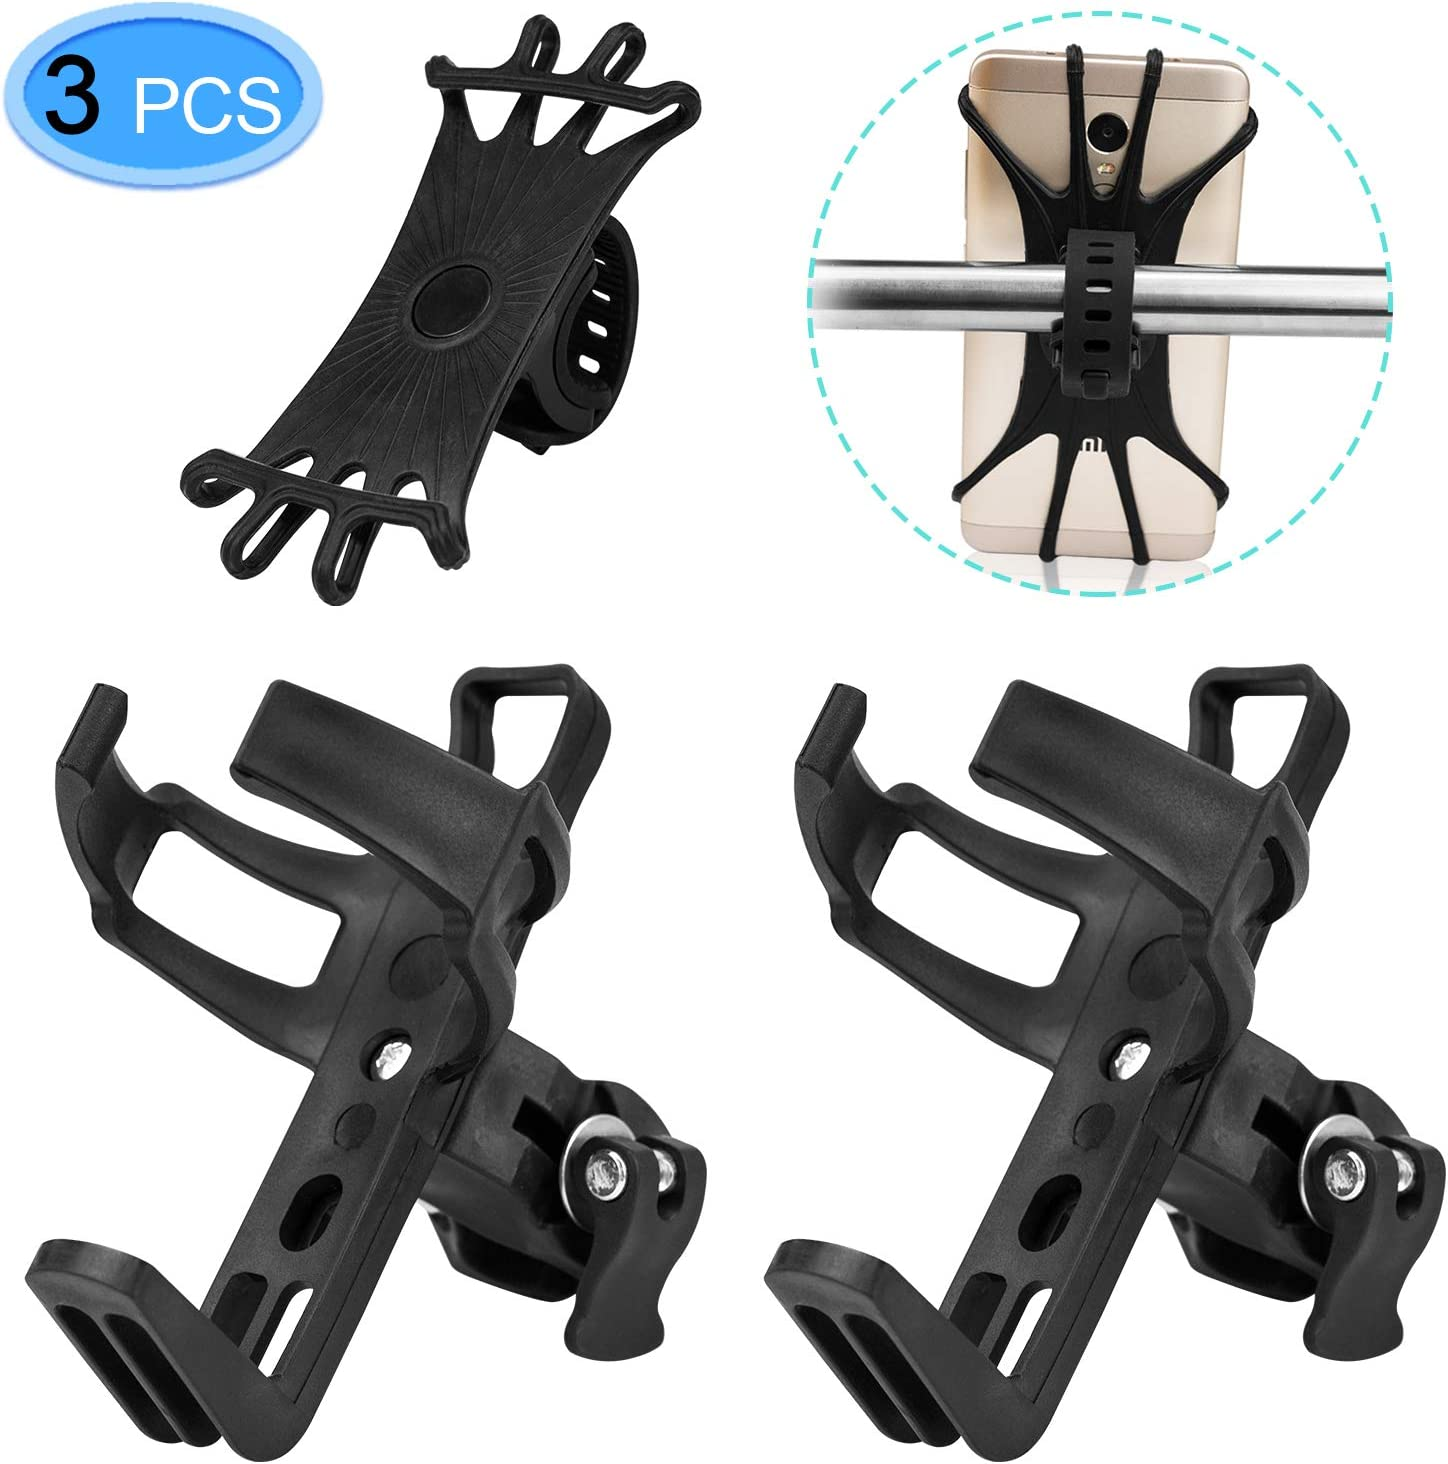 EAONE 2 Pack Bike Water Bottle Holder No Screws with 1 Pack Silicone Bike Phone Mount